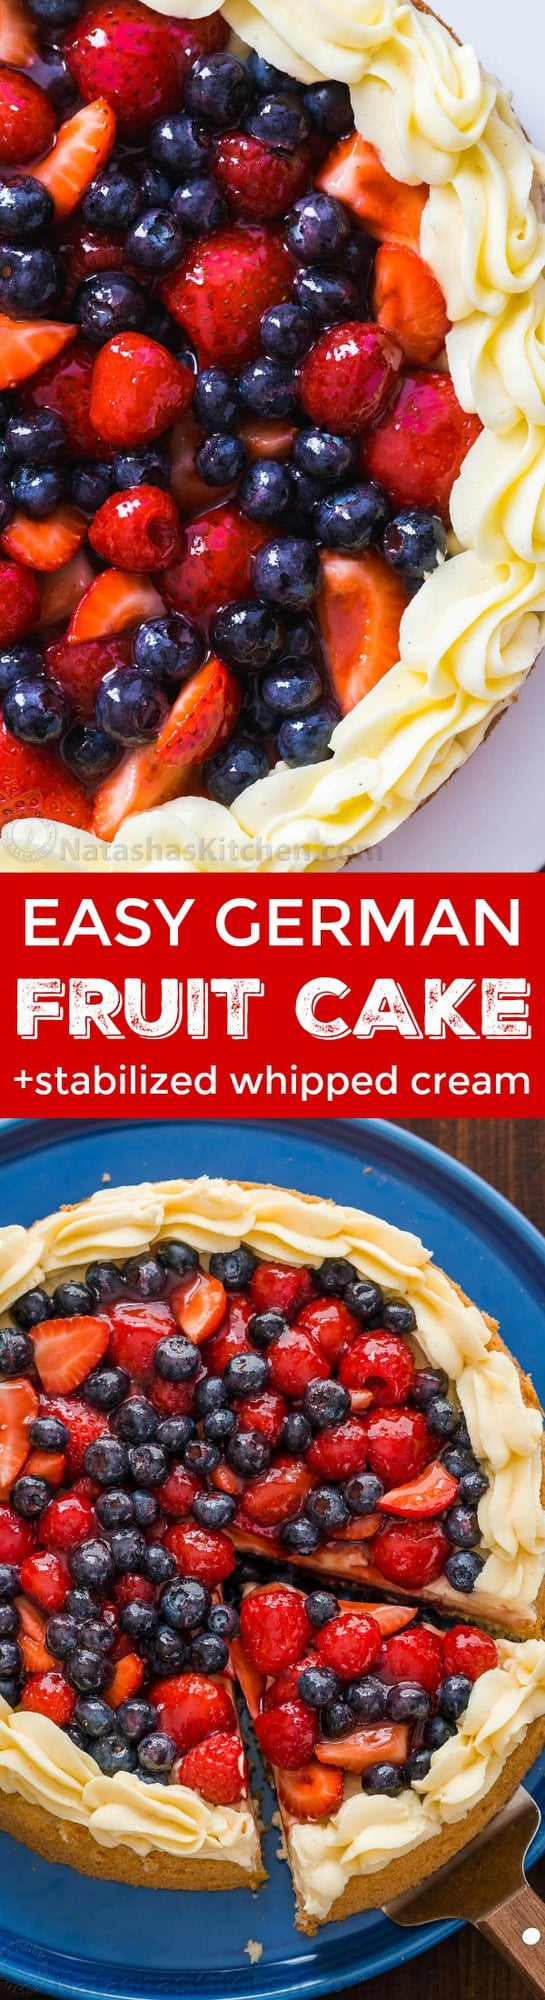 Our spin on the classic German Fruit Cake